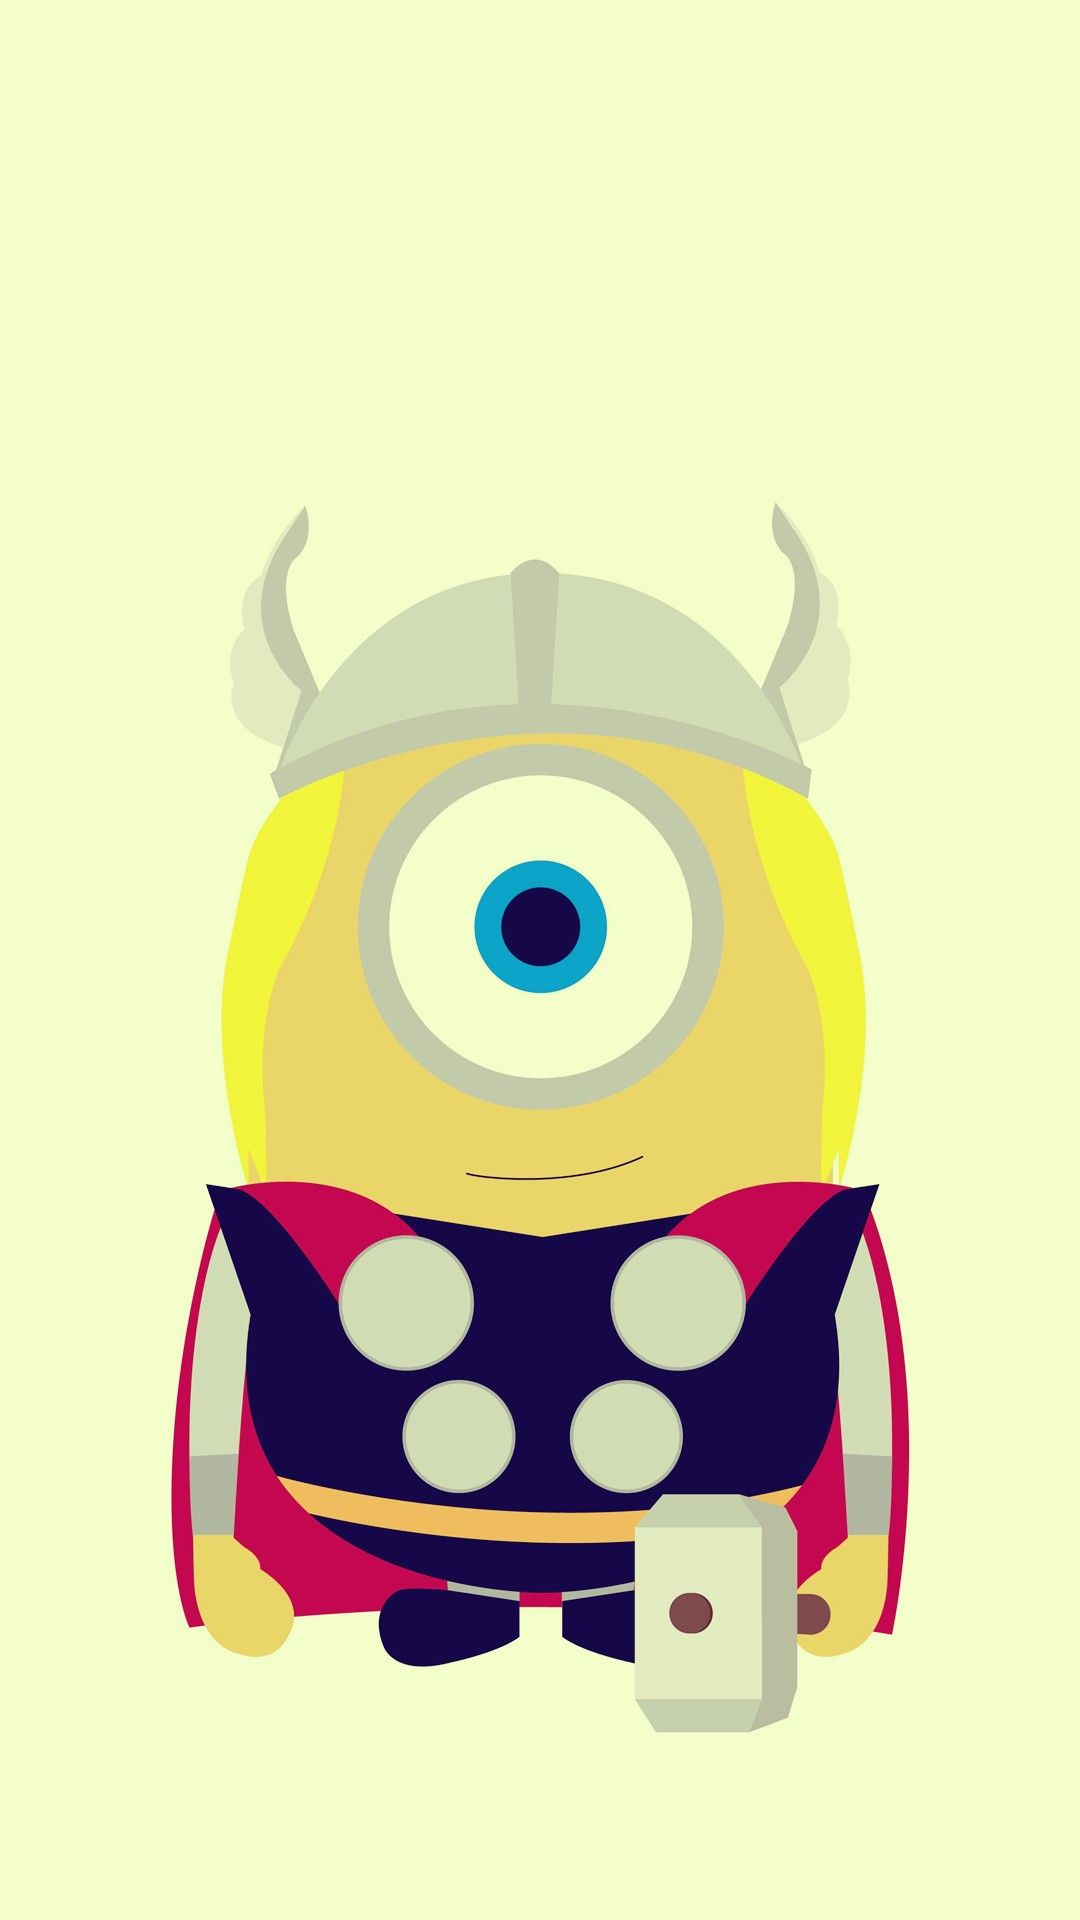 funny thor minion avengers iphone 6 plus wallpaper hd - 2014